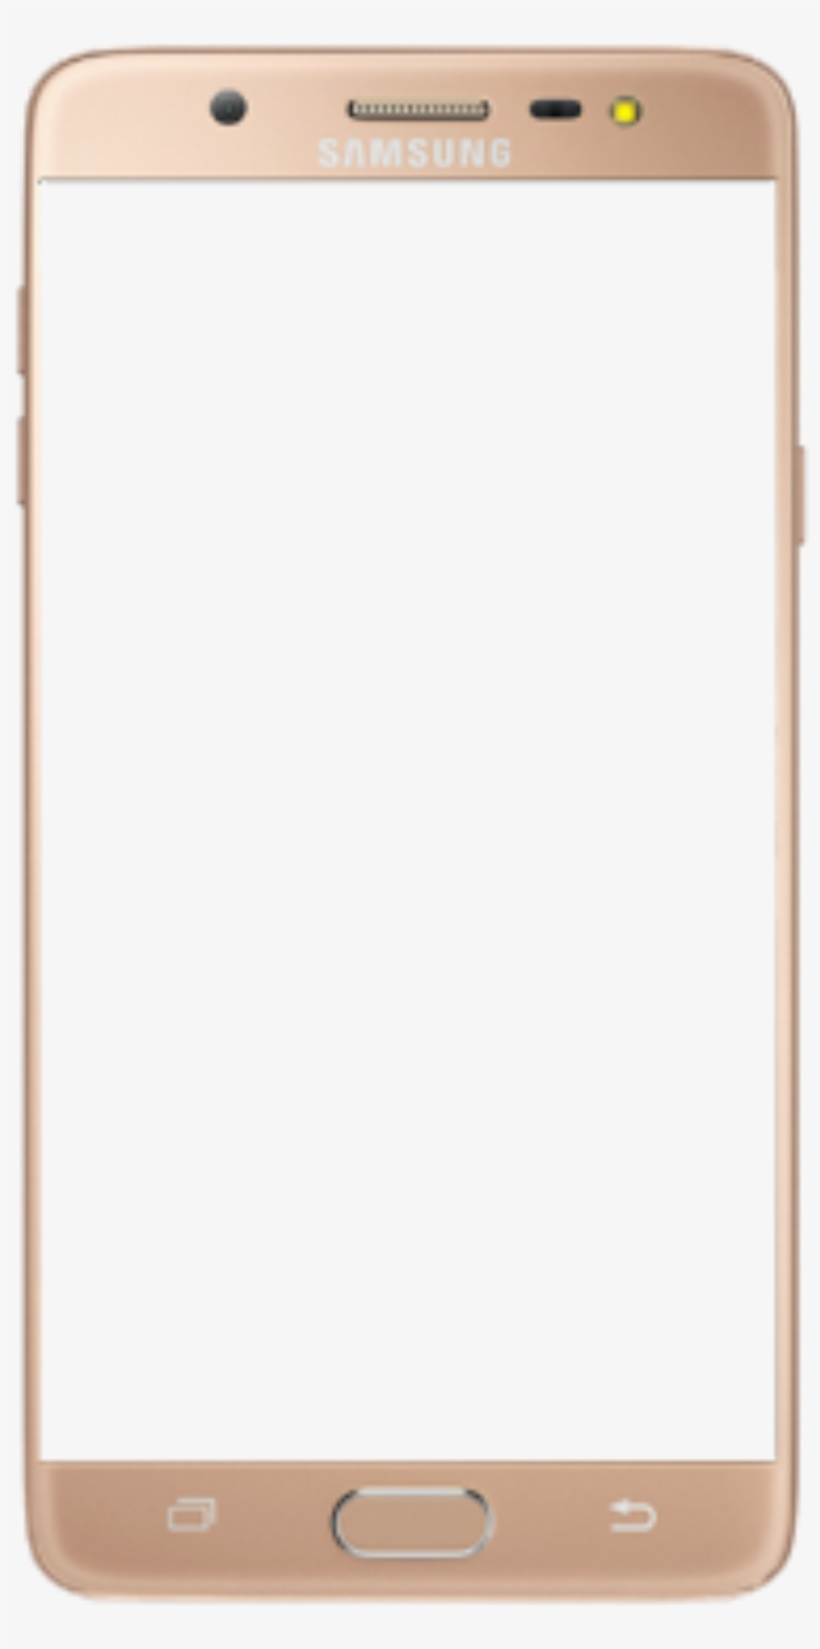 Mobile Phone Frame Download.